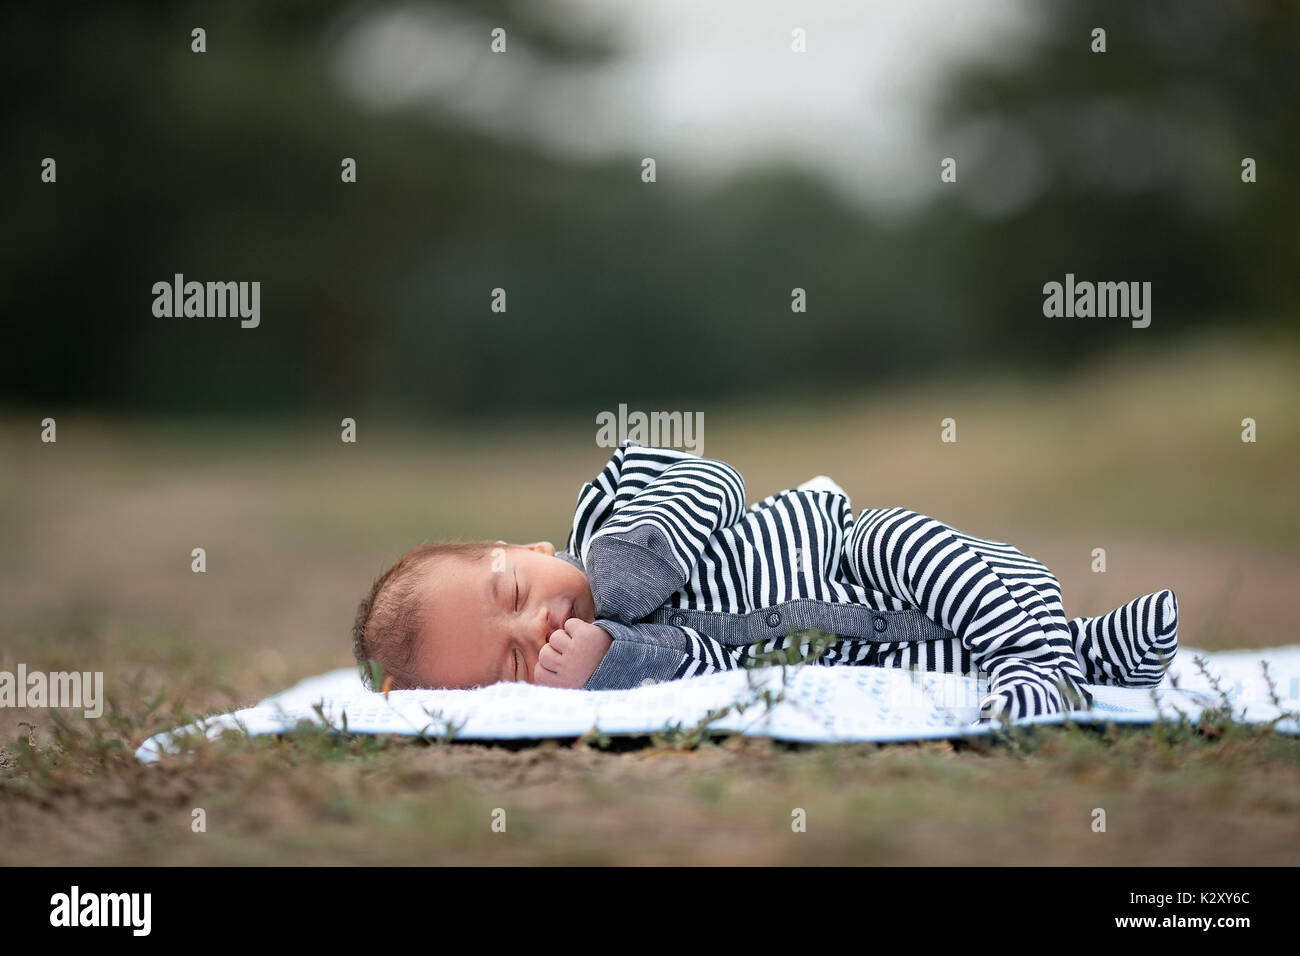 Newborn baby in stripy romper sleeps on blue coverlet on grass in park. Copy space top. - Stock Image